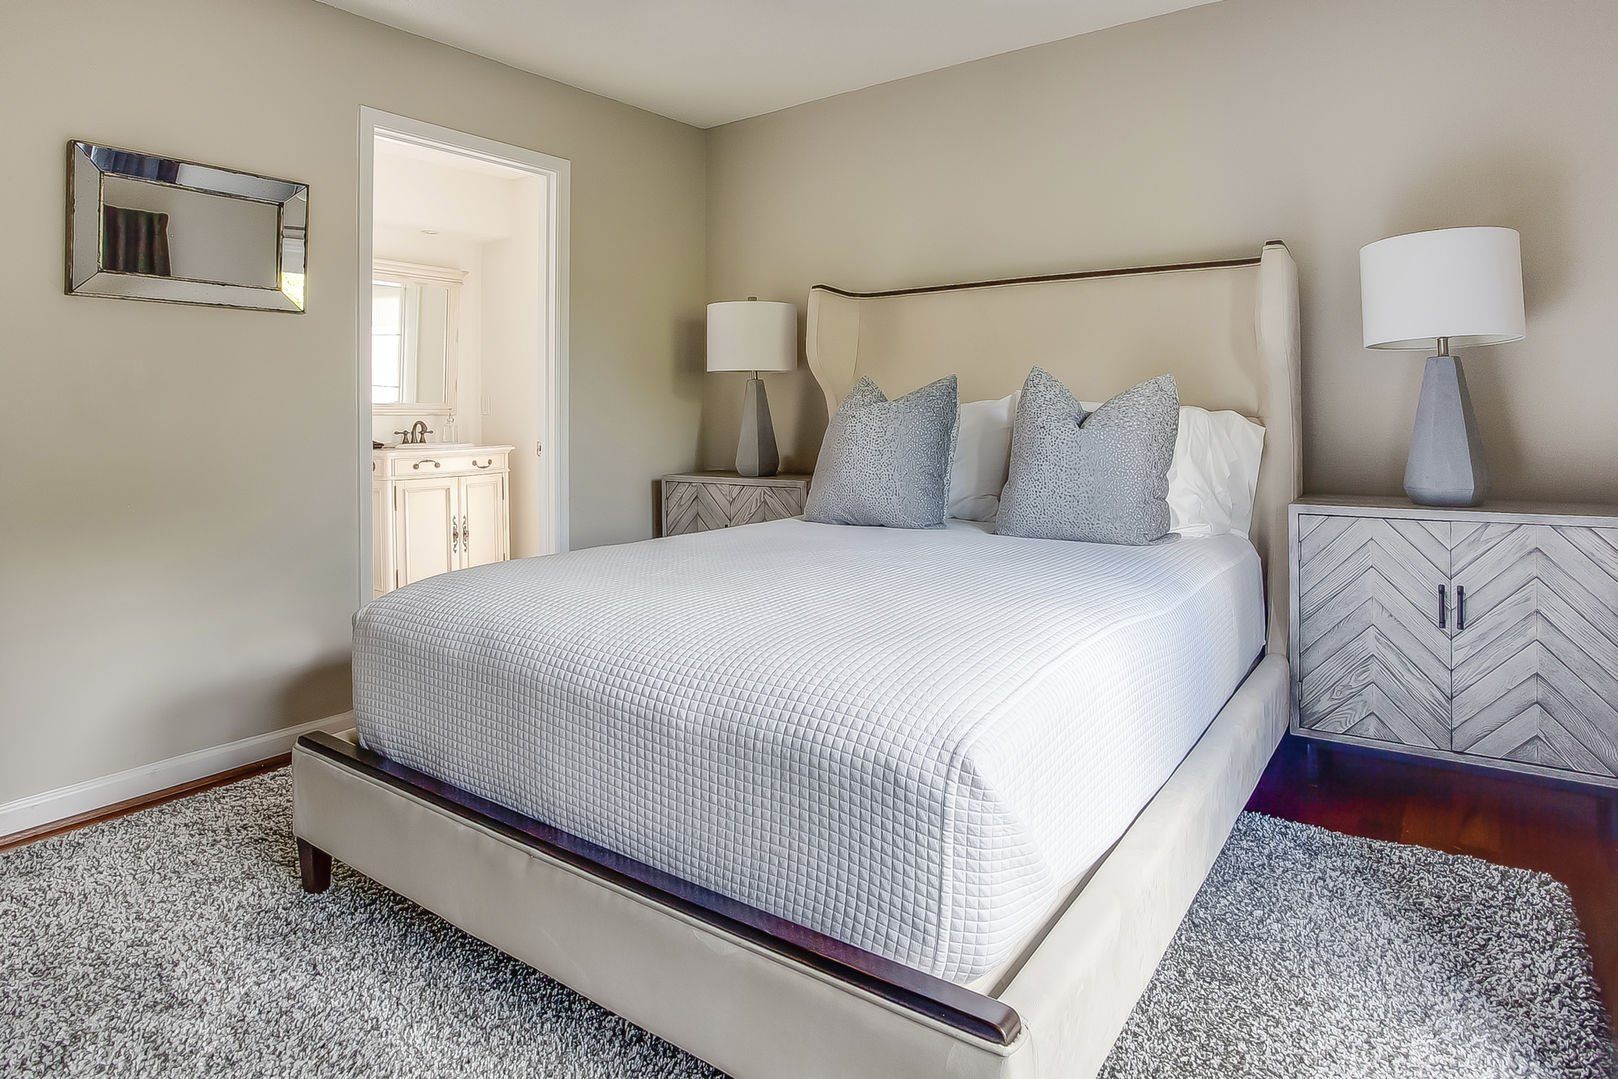 Guest bedroom in this Poncey Highlands Rental